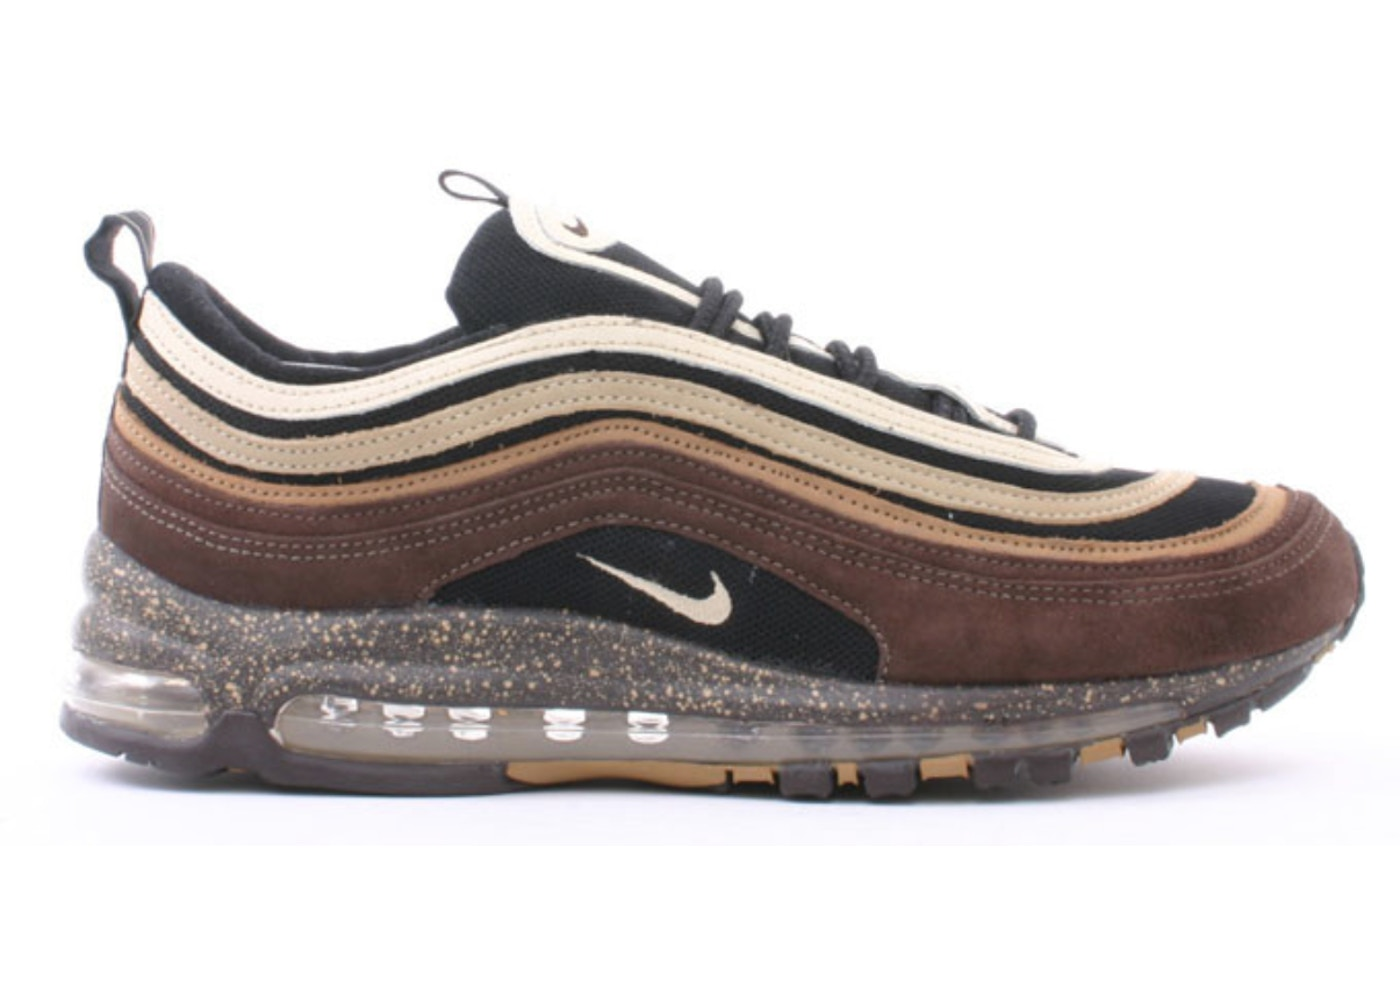 best wholesaler uk availability classic fit Air Max 97 True Baroque Brown